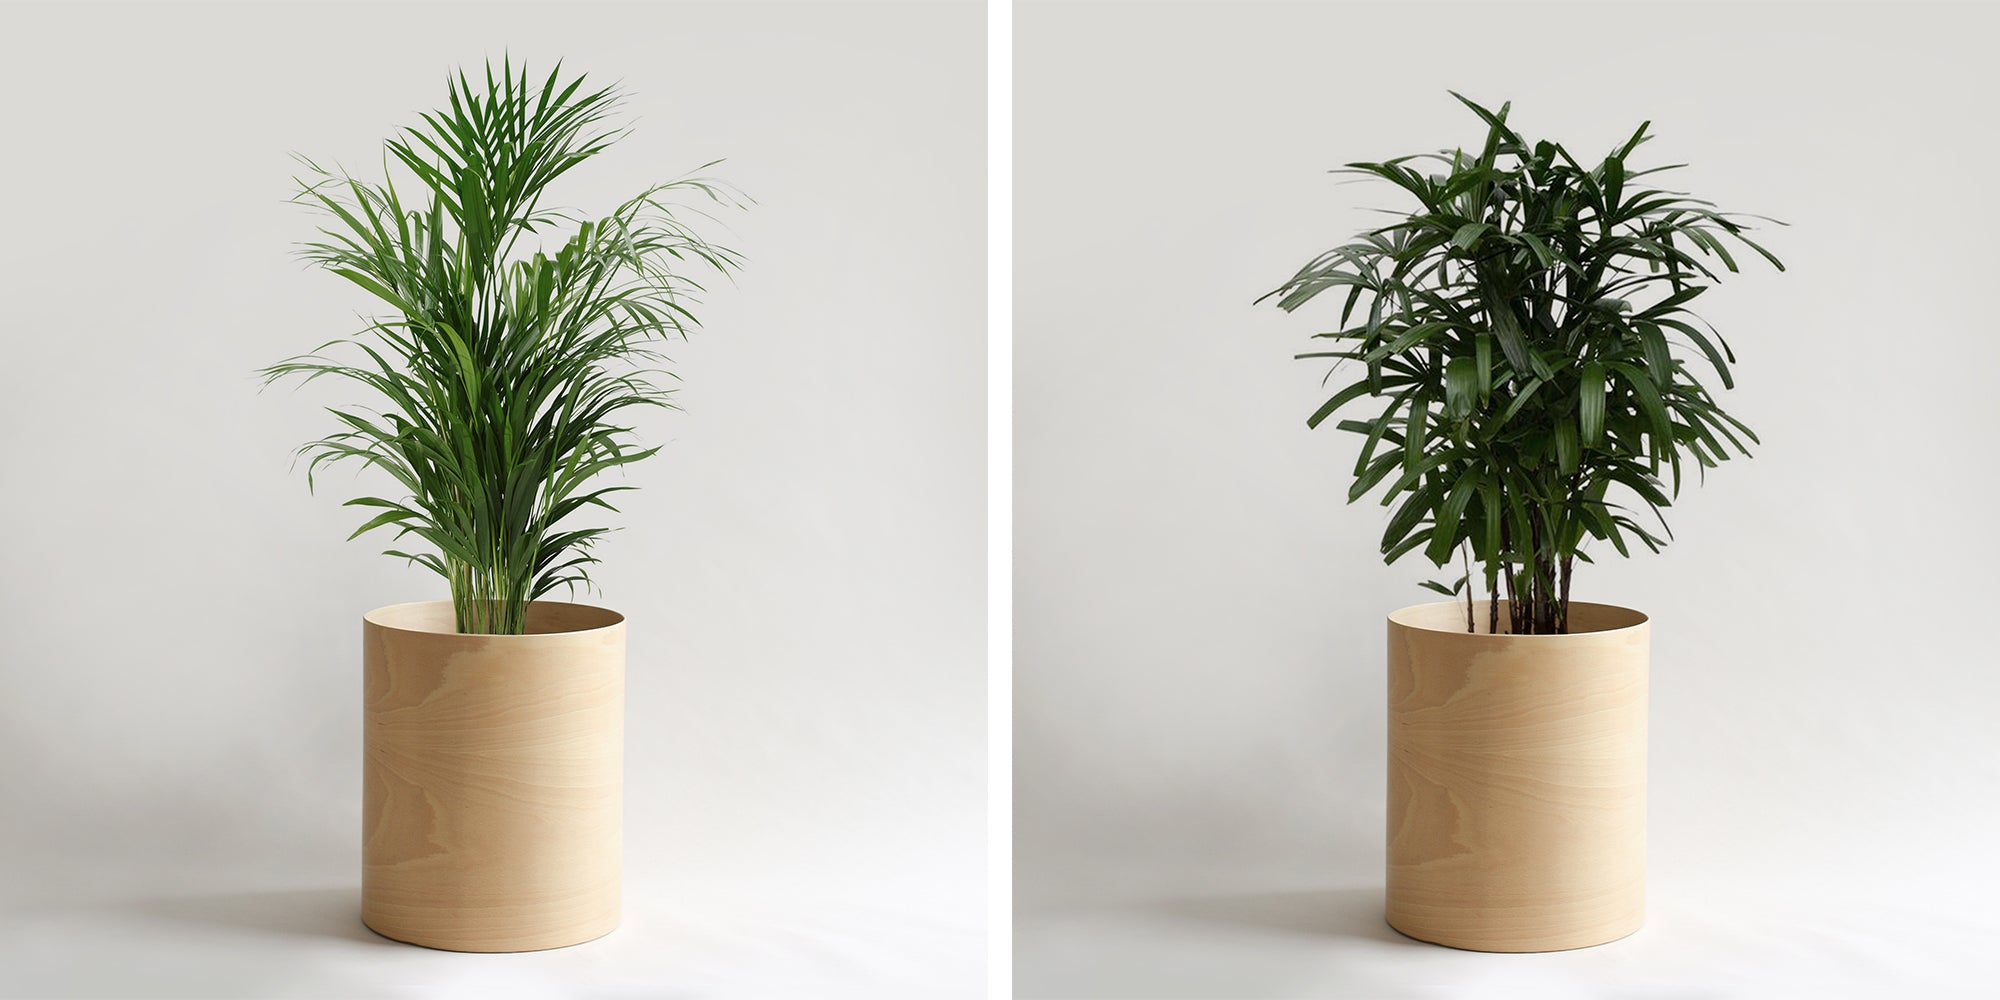 Arecia Palm and Lady Palm are both efficient for cleansing indoor air.